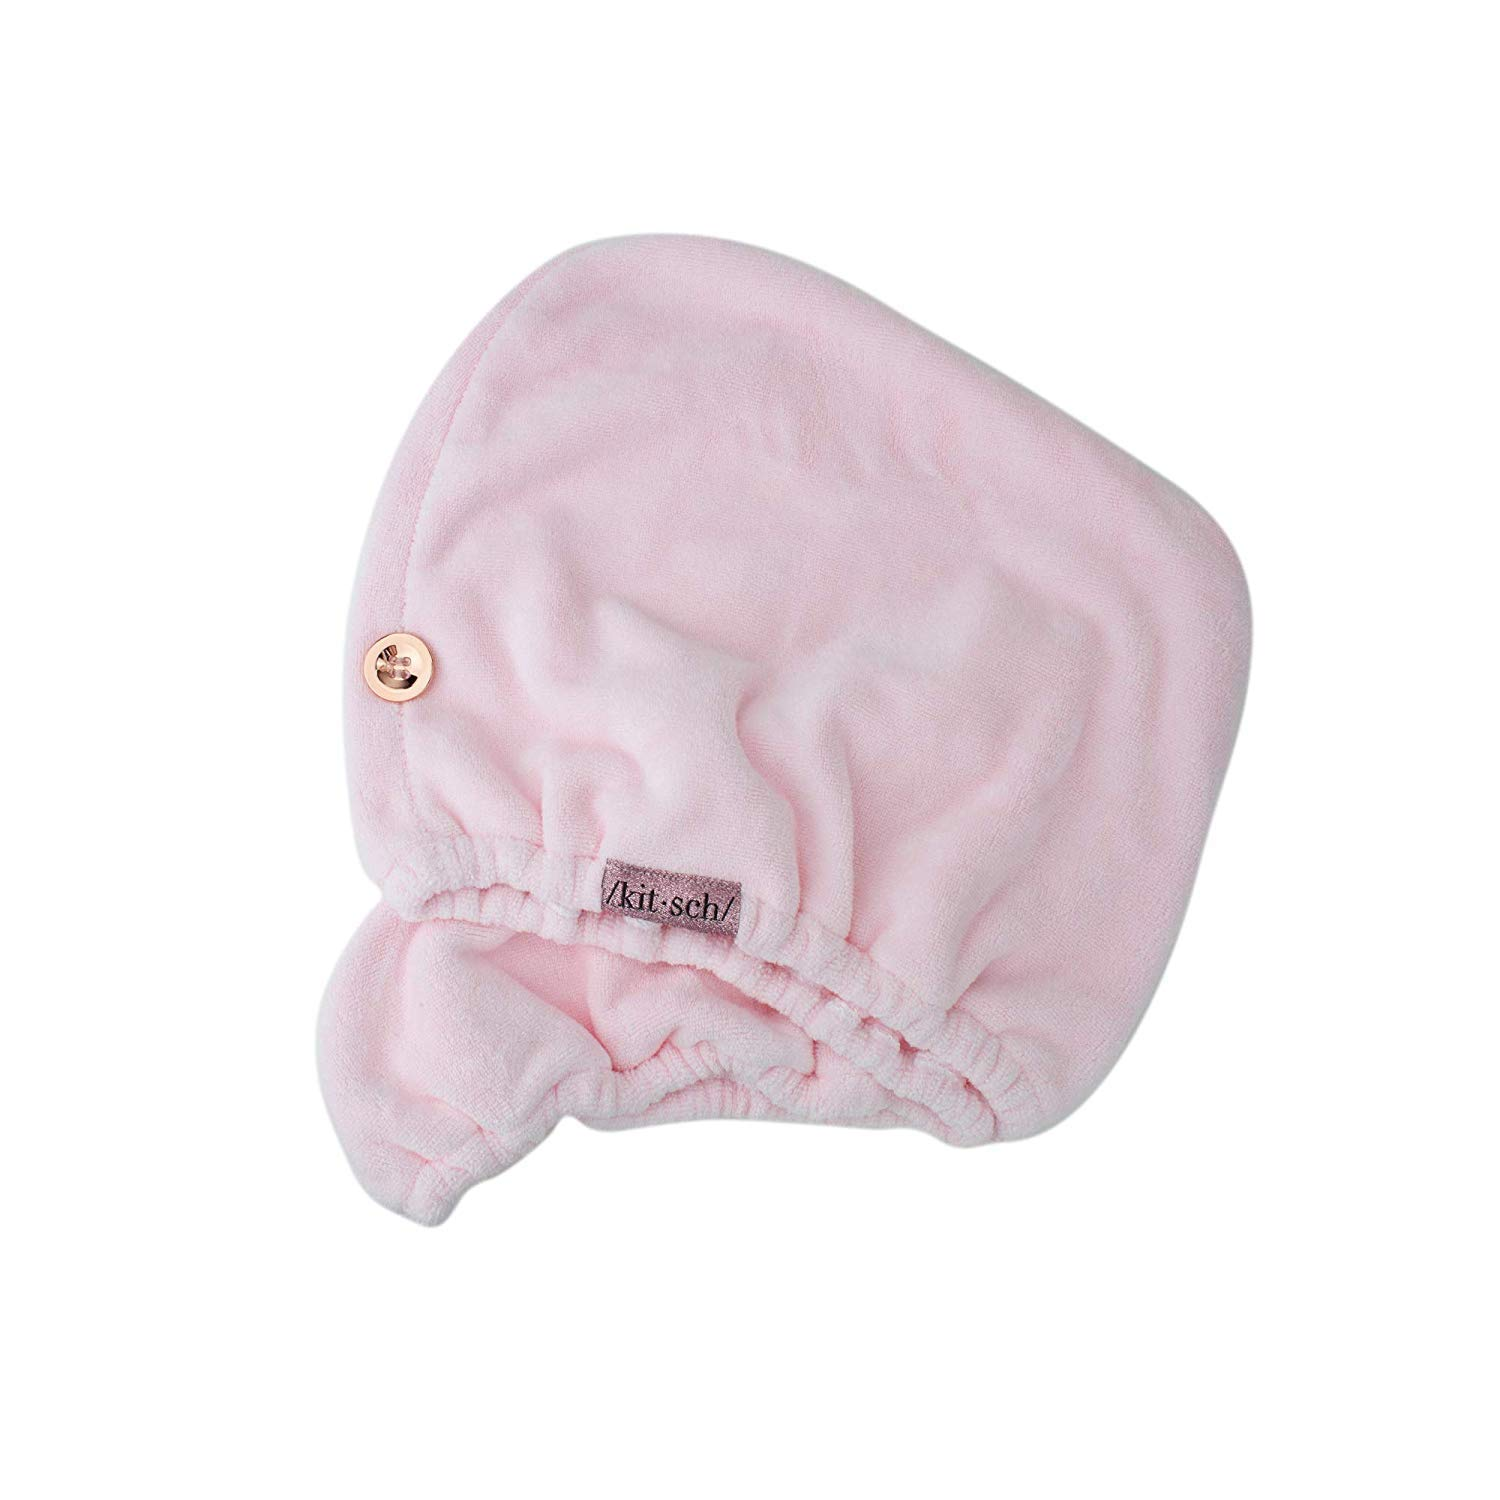 Kitsch Microfiber Towel Turban for Wet Hair